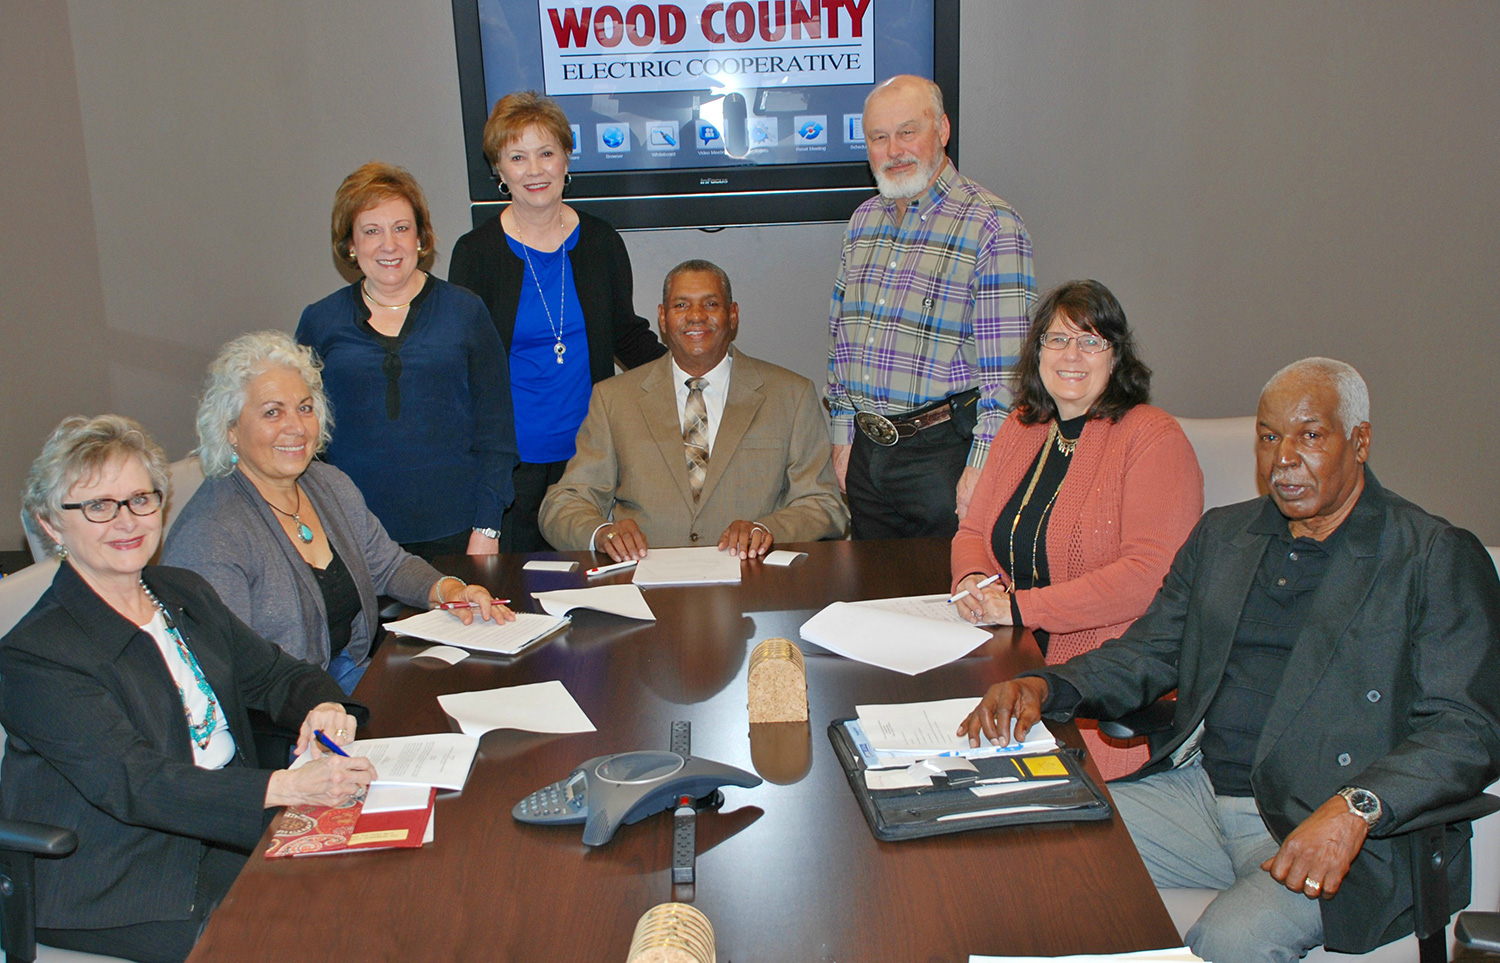 The Wood County Electric Charitable Foundation board members sit in a meeting around a conference table.